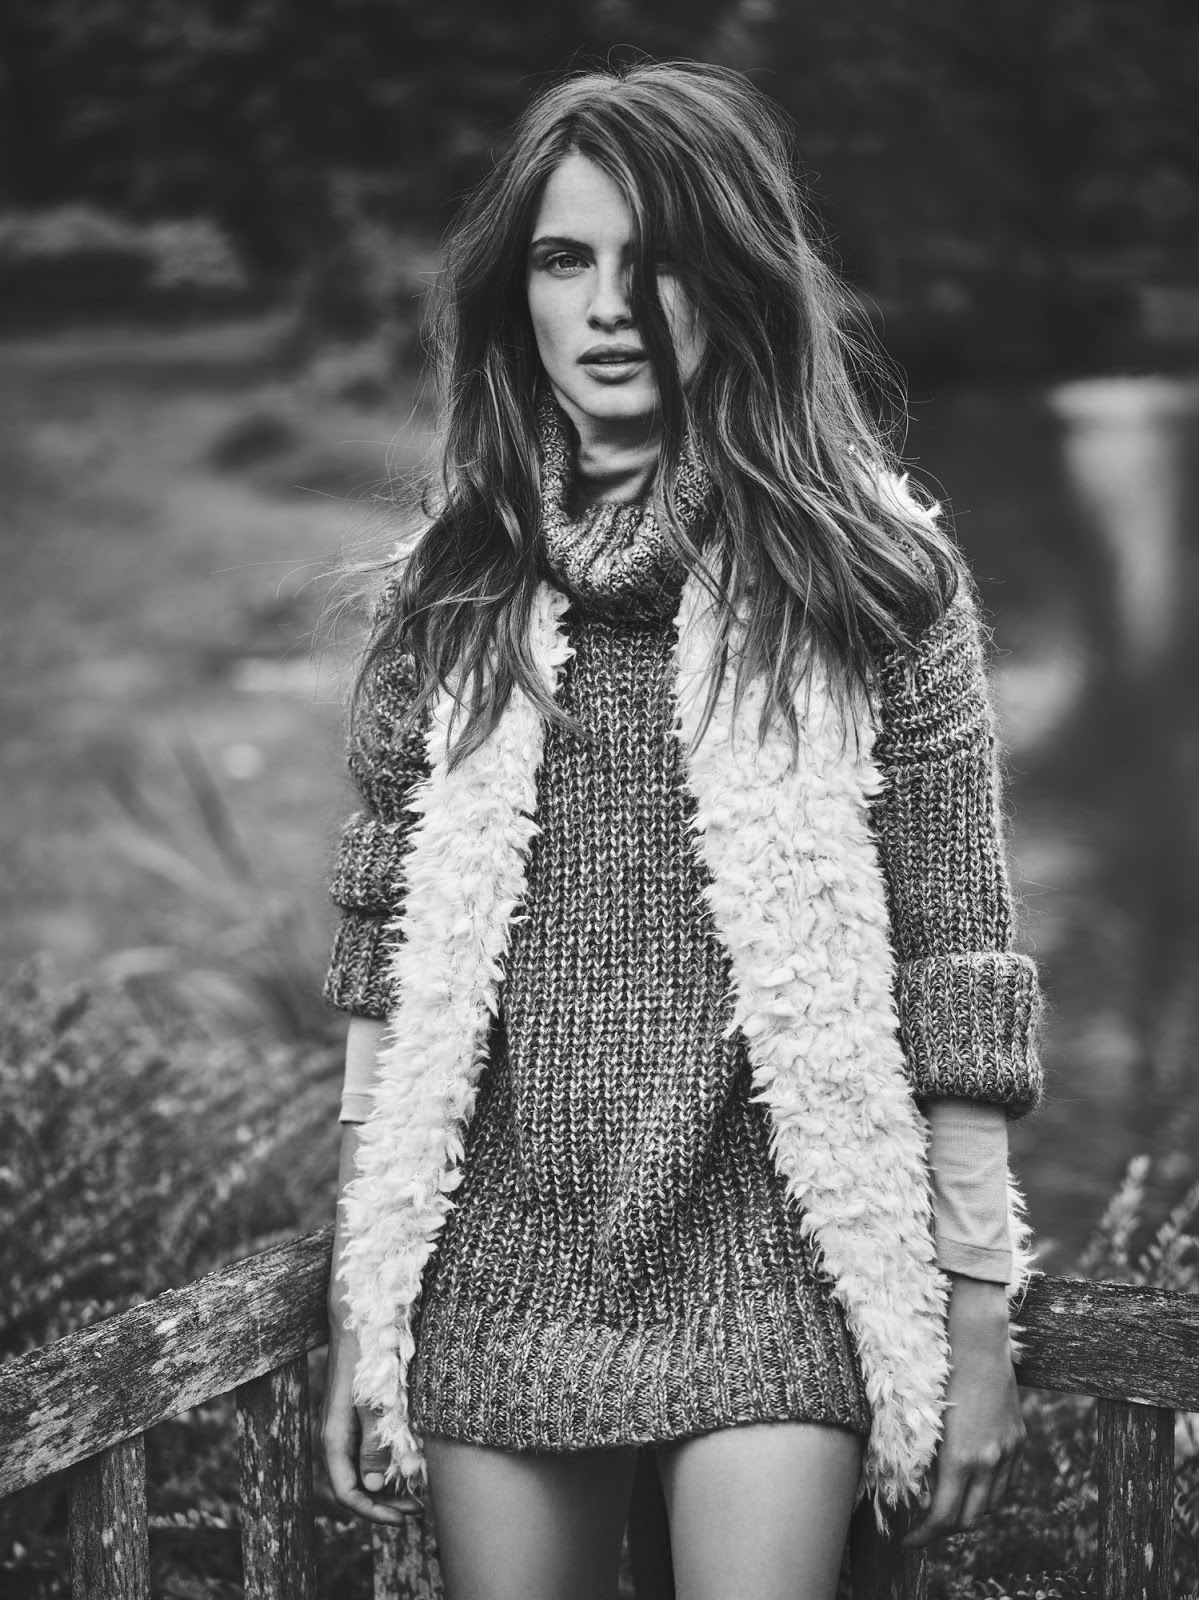 Kristina Peric Models Dreamy Looks for FASHION by Chris